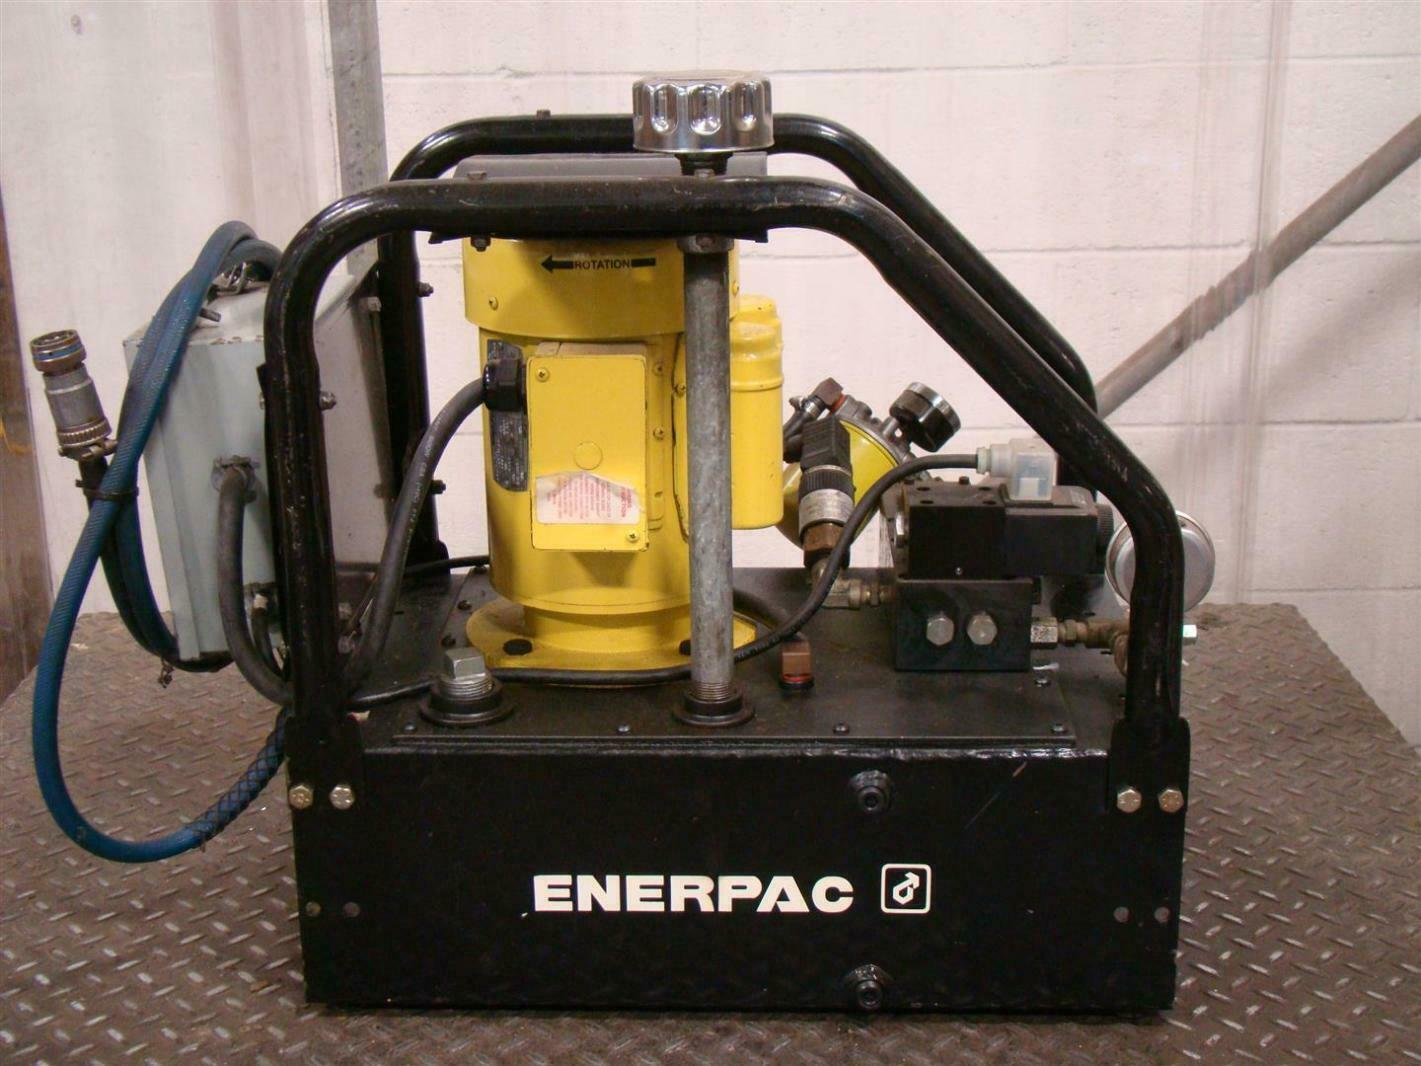 Electric Hydraulic Pump >> Enerpac Electric Hydraulic Pump 5000psi 350bar Vst2210d Joseph